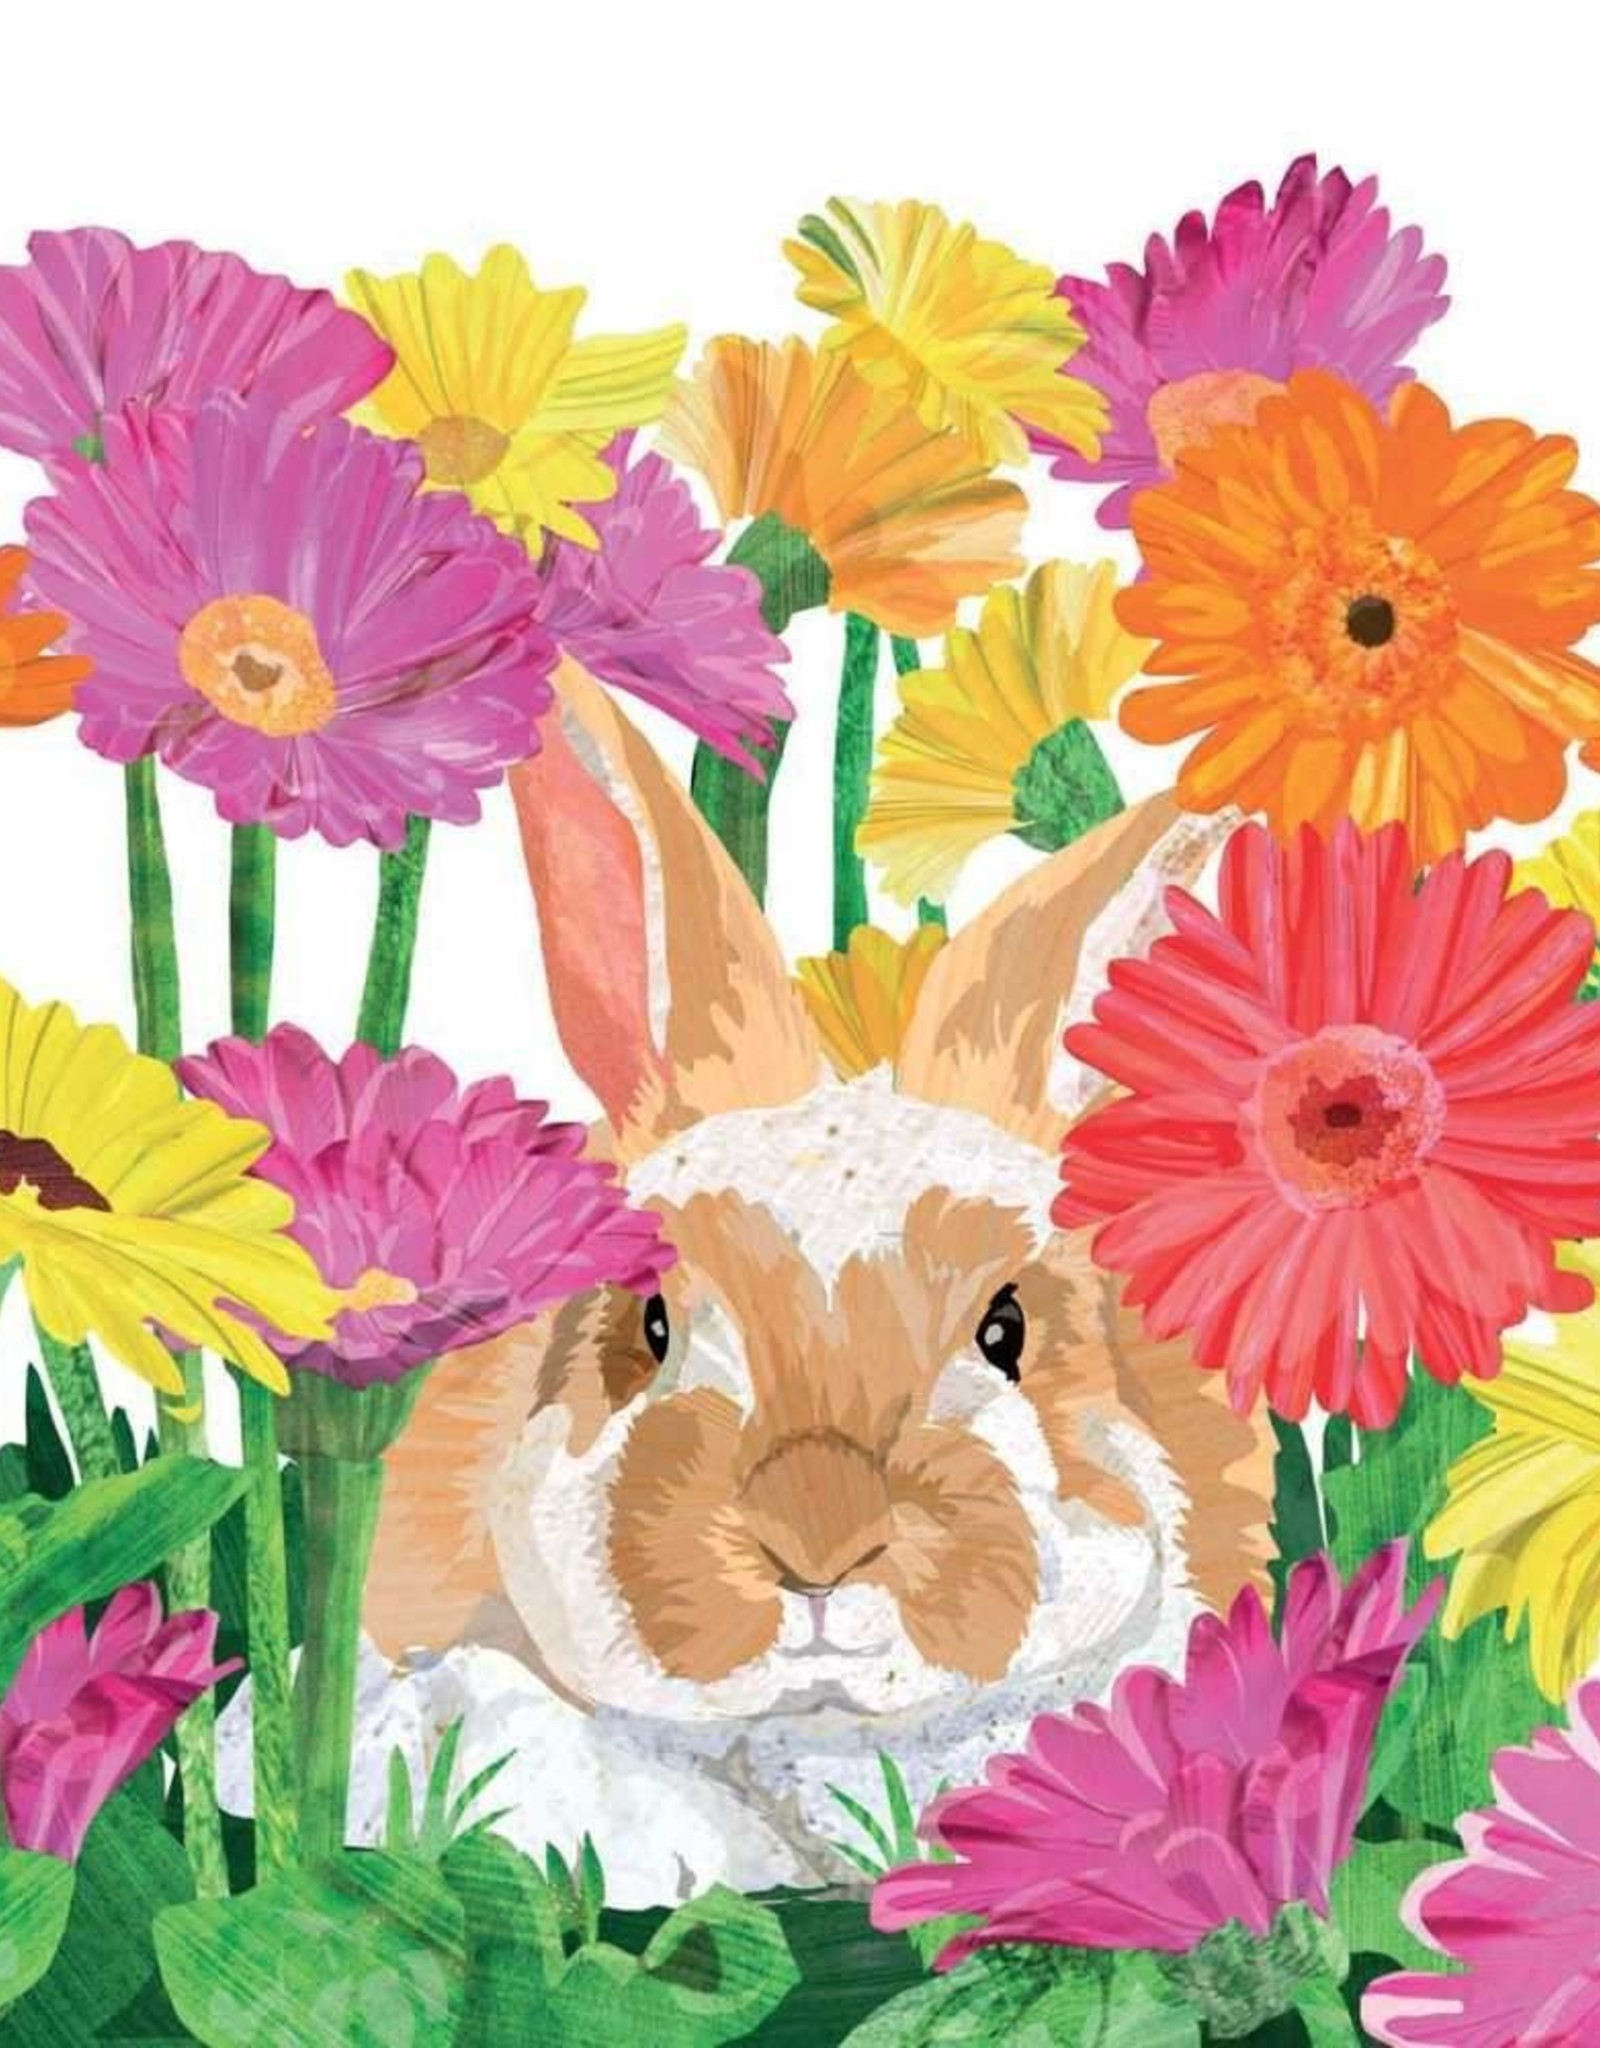 Paperproducts Design PPD - Cocktail Napkins Gerbera Bunny